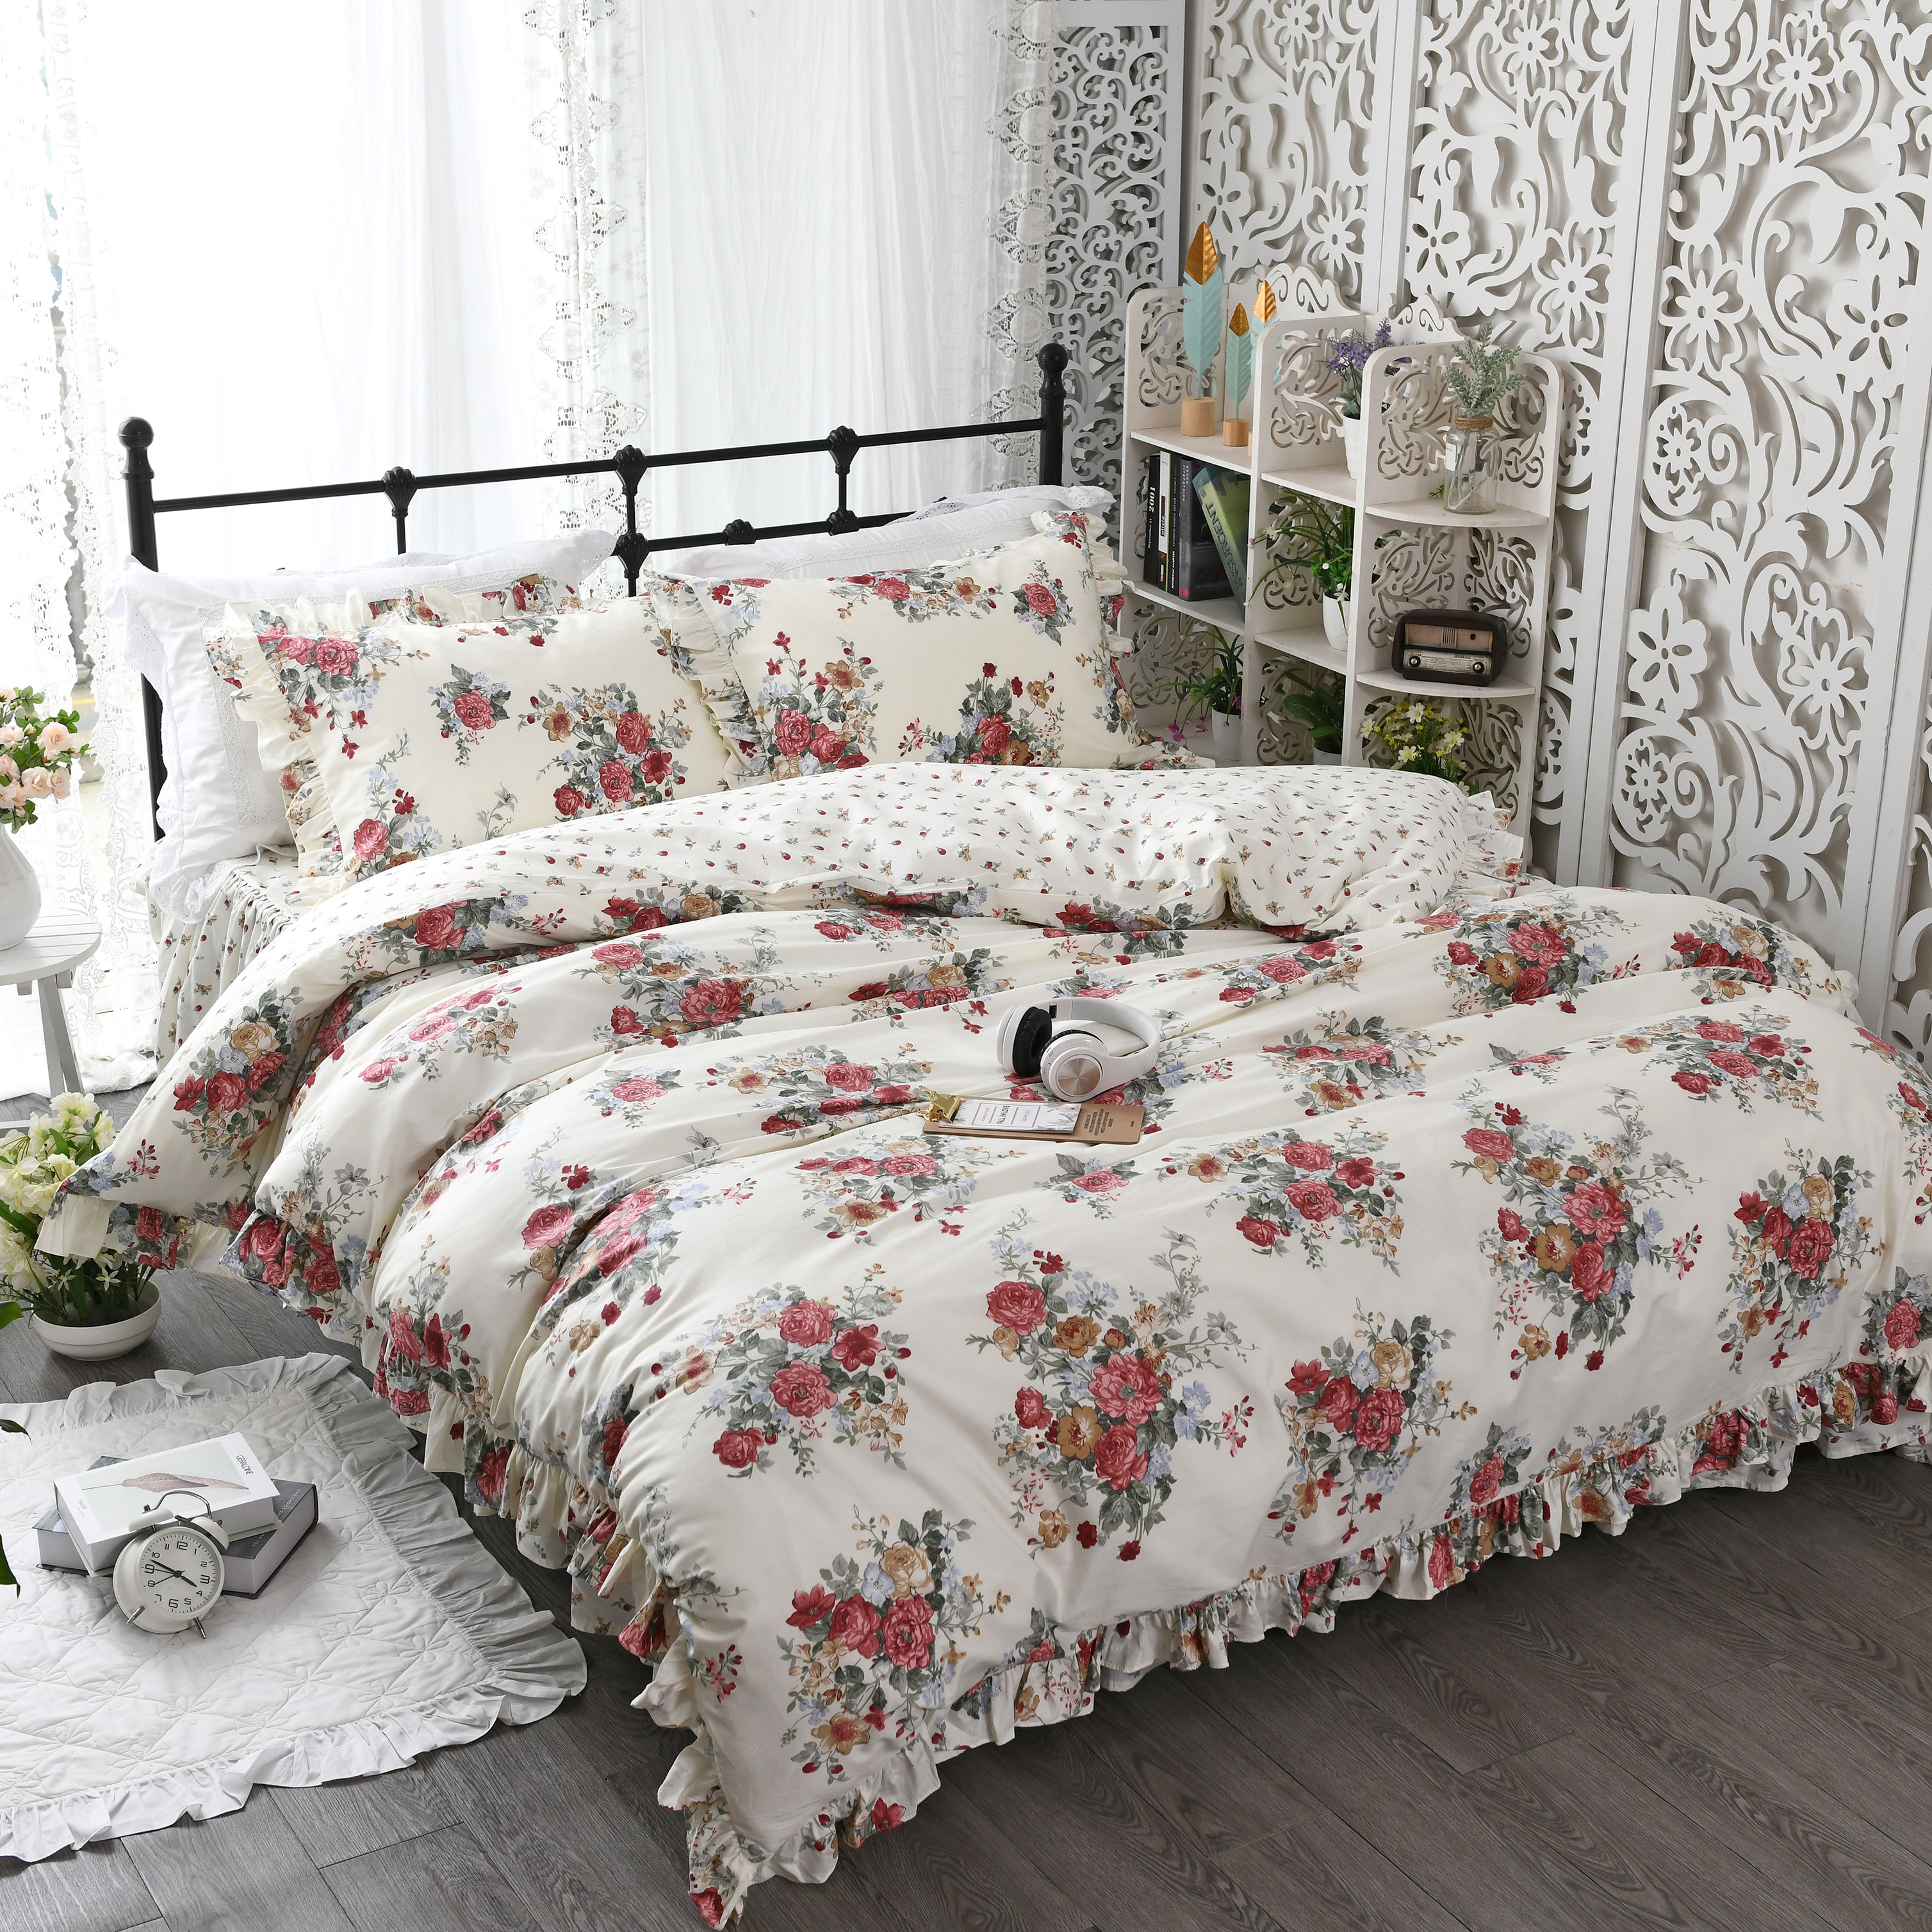 Pastoral small fresh cotton bedding set ruffled bed girl net red bed skirt is overprinted flowersPastoral small fresh cotton bedding set ruffled bed girl net red bed skirt is overprinted flowers